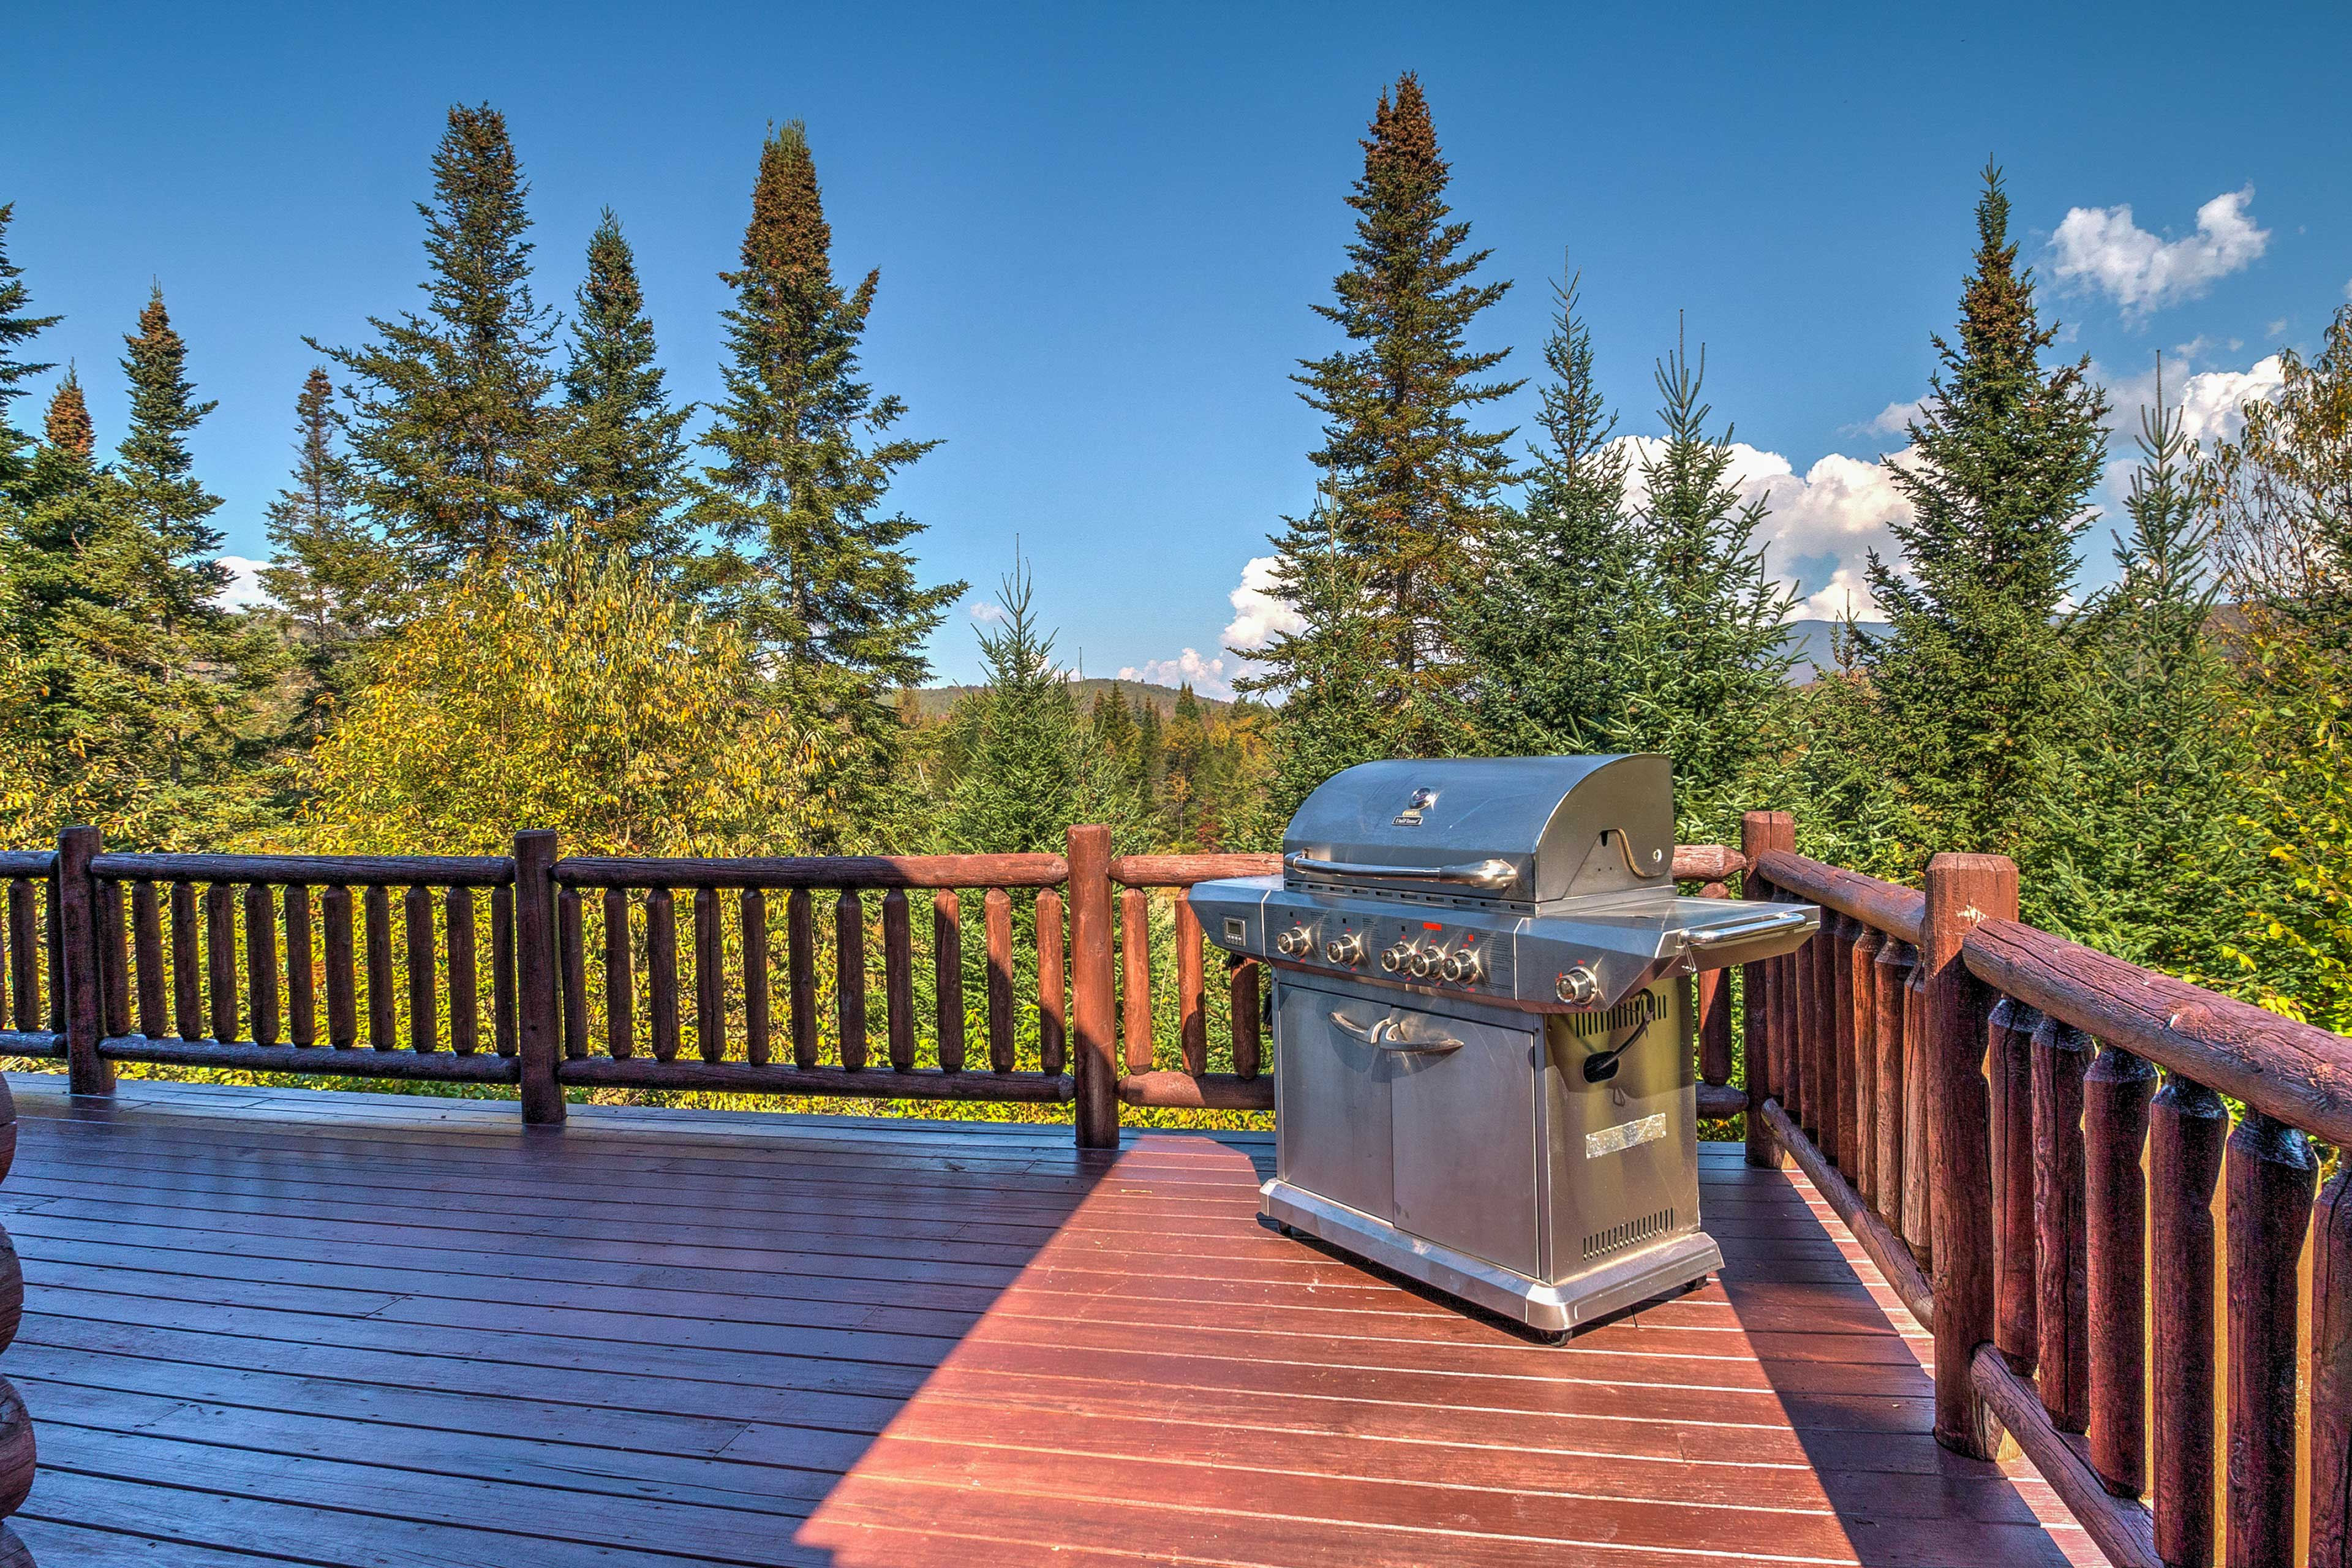 Enjoy a family barbecue on the spacious deck with a gas grill.